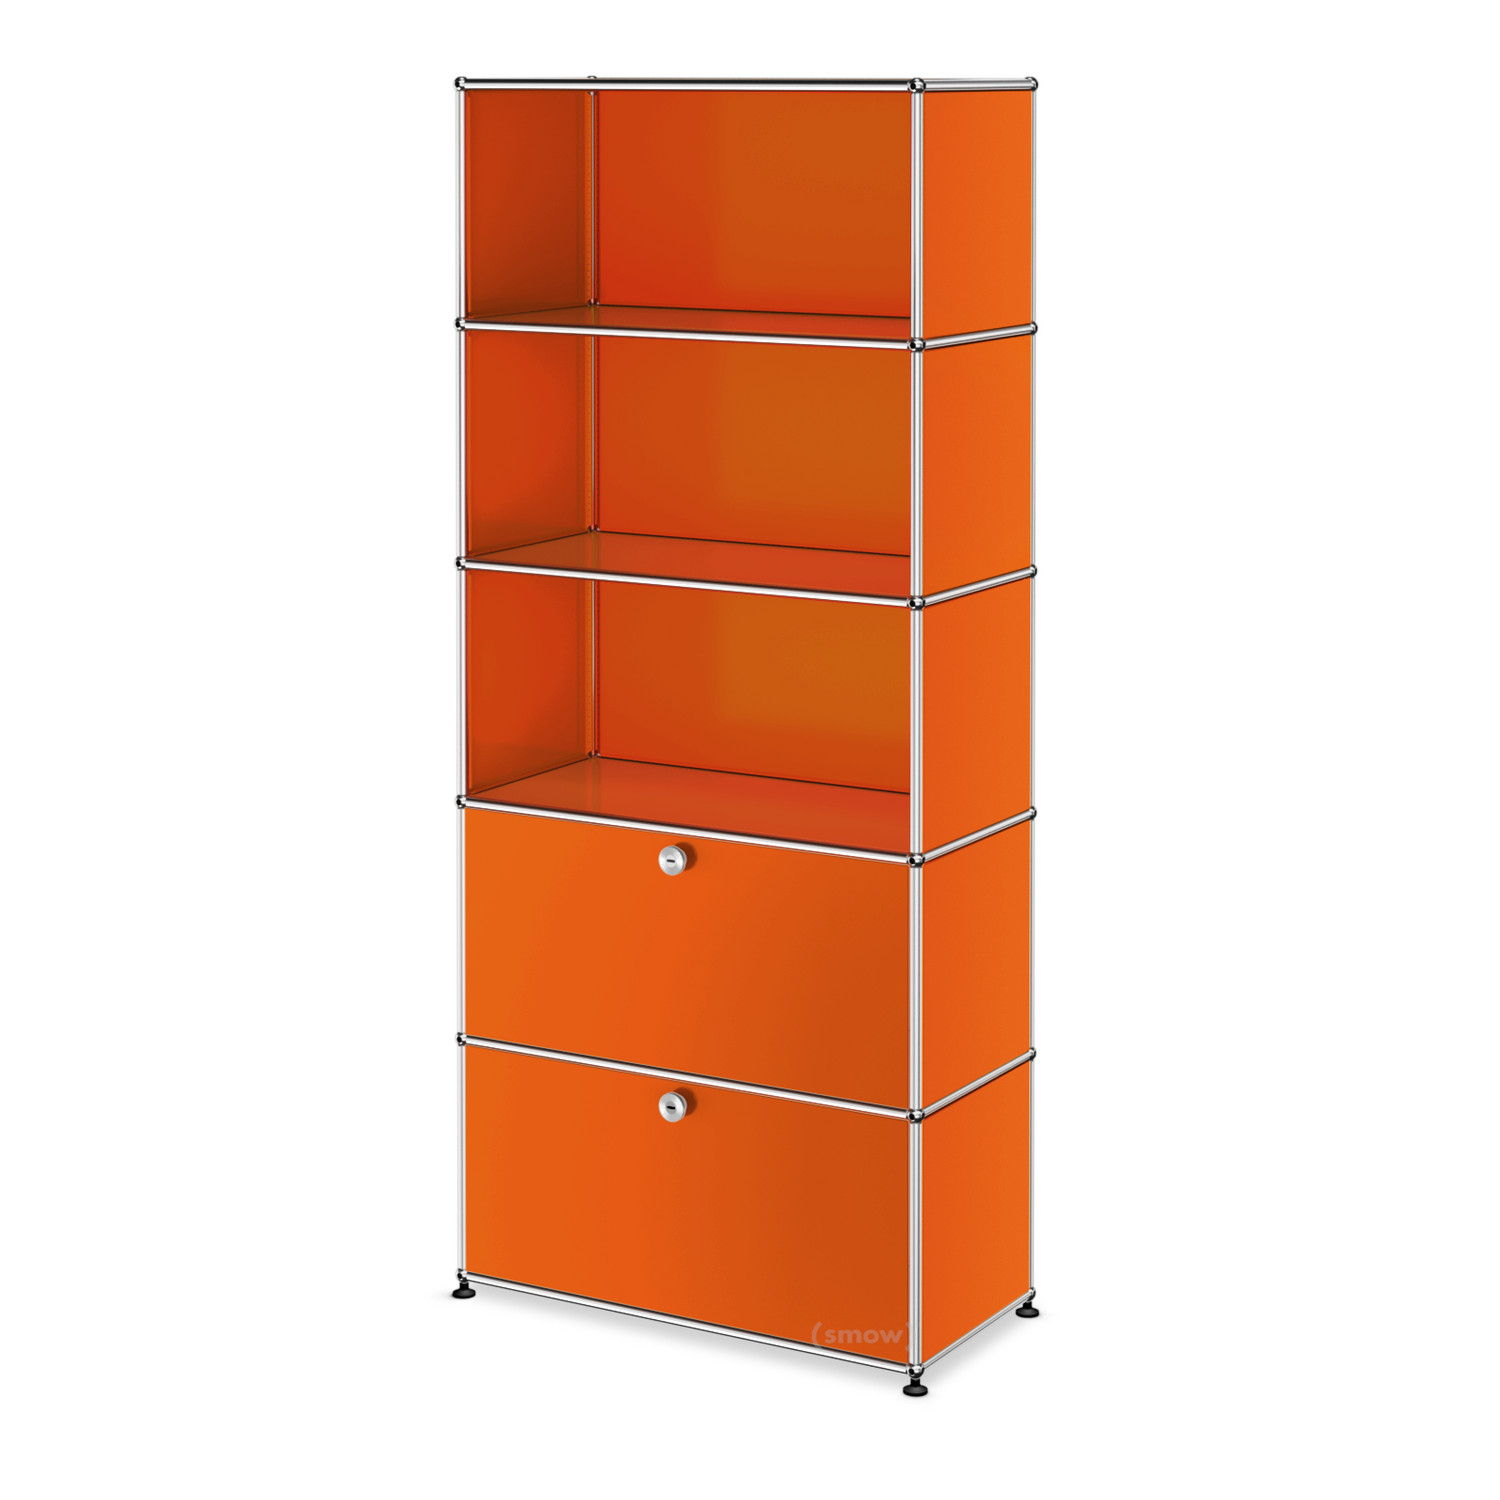 usm haller aktenregal m individualisierbar reinorange. Black Bedroom Furniture Sets. Home Design Ideas